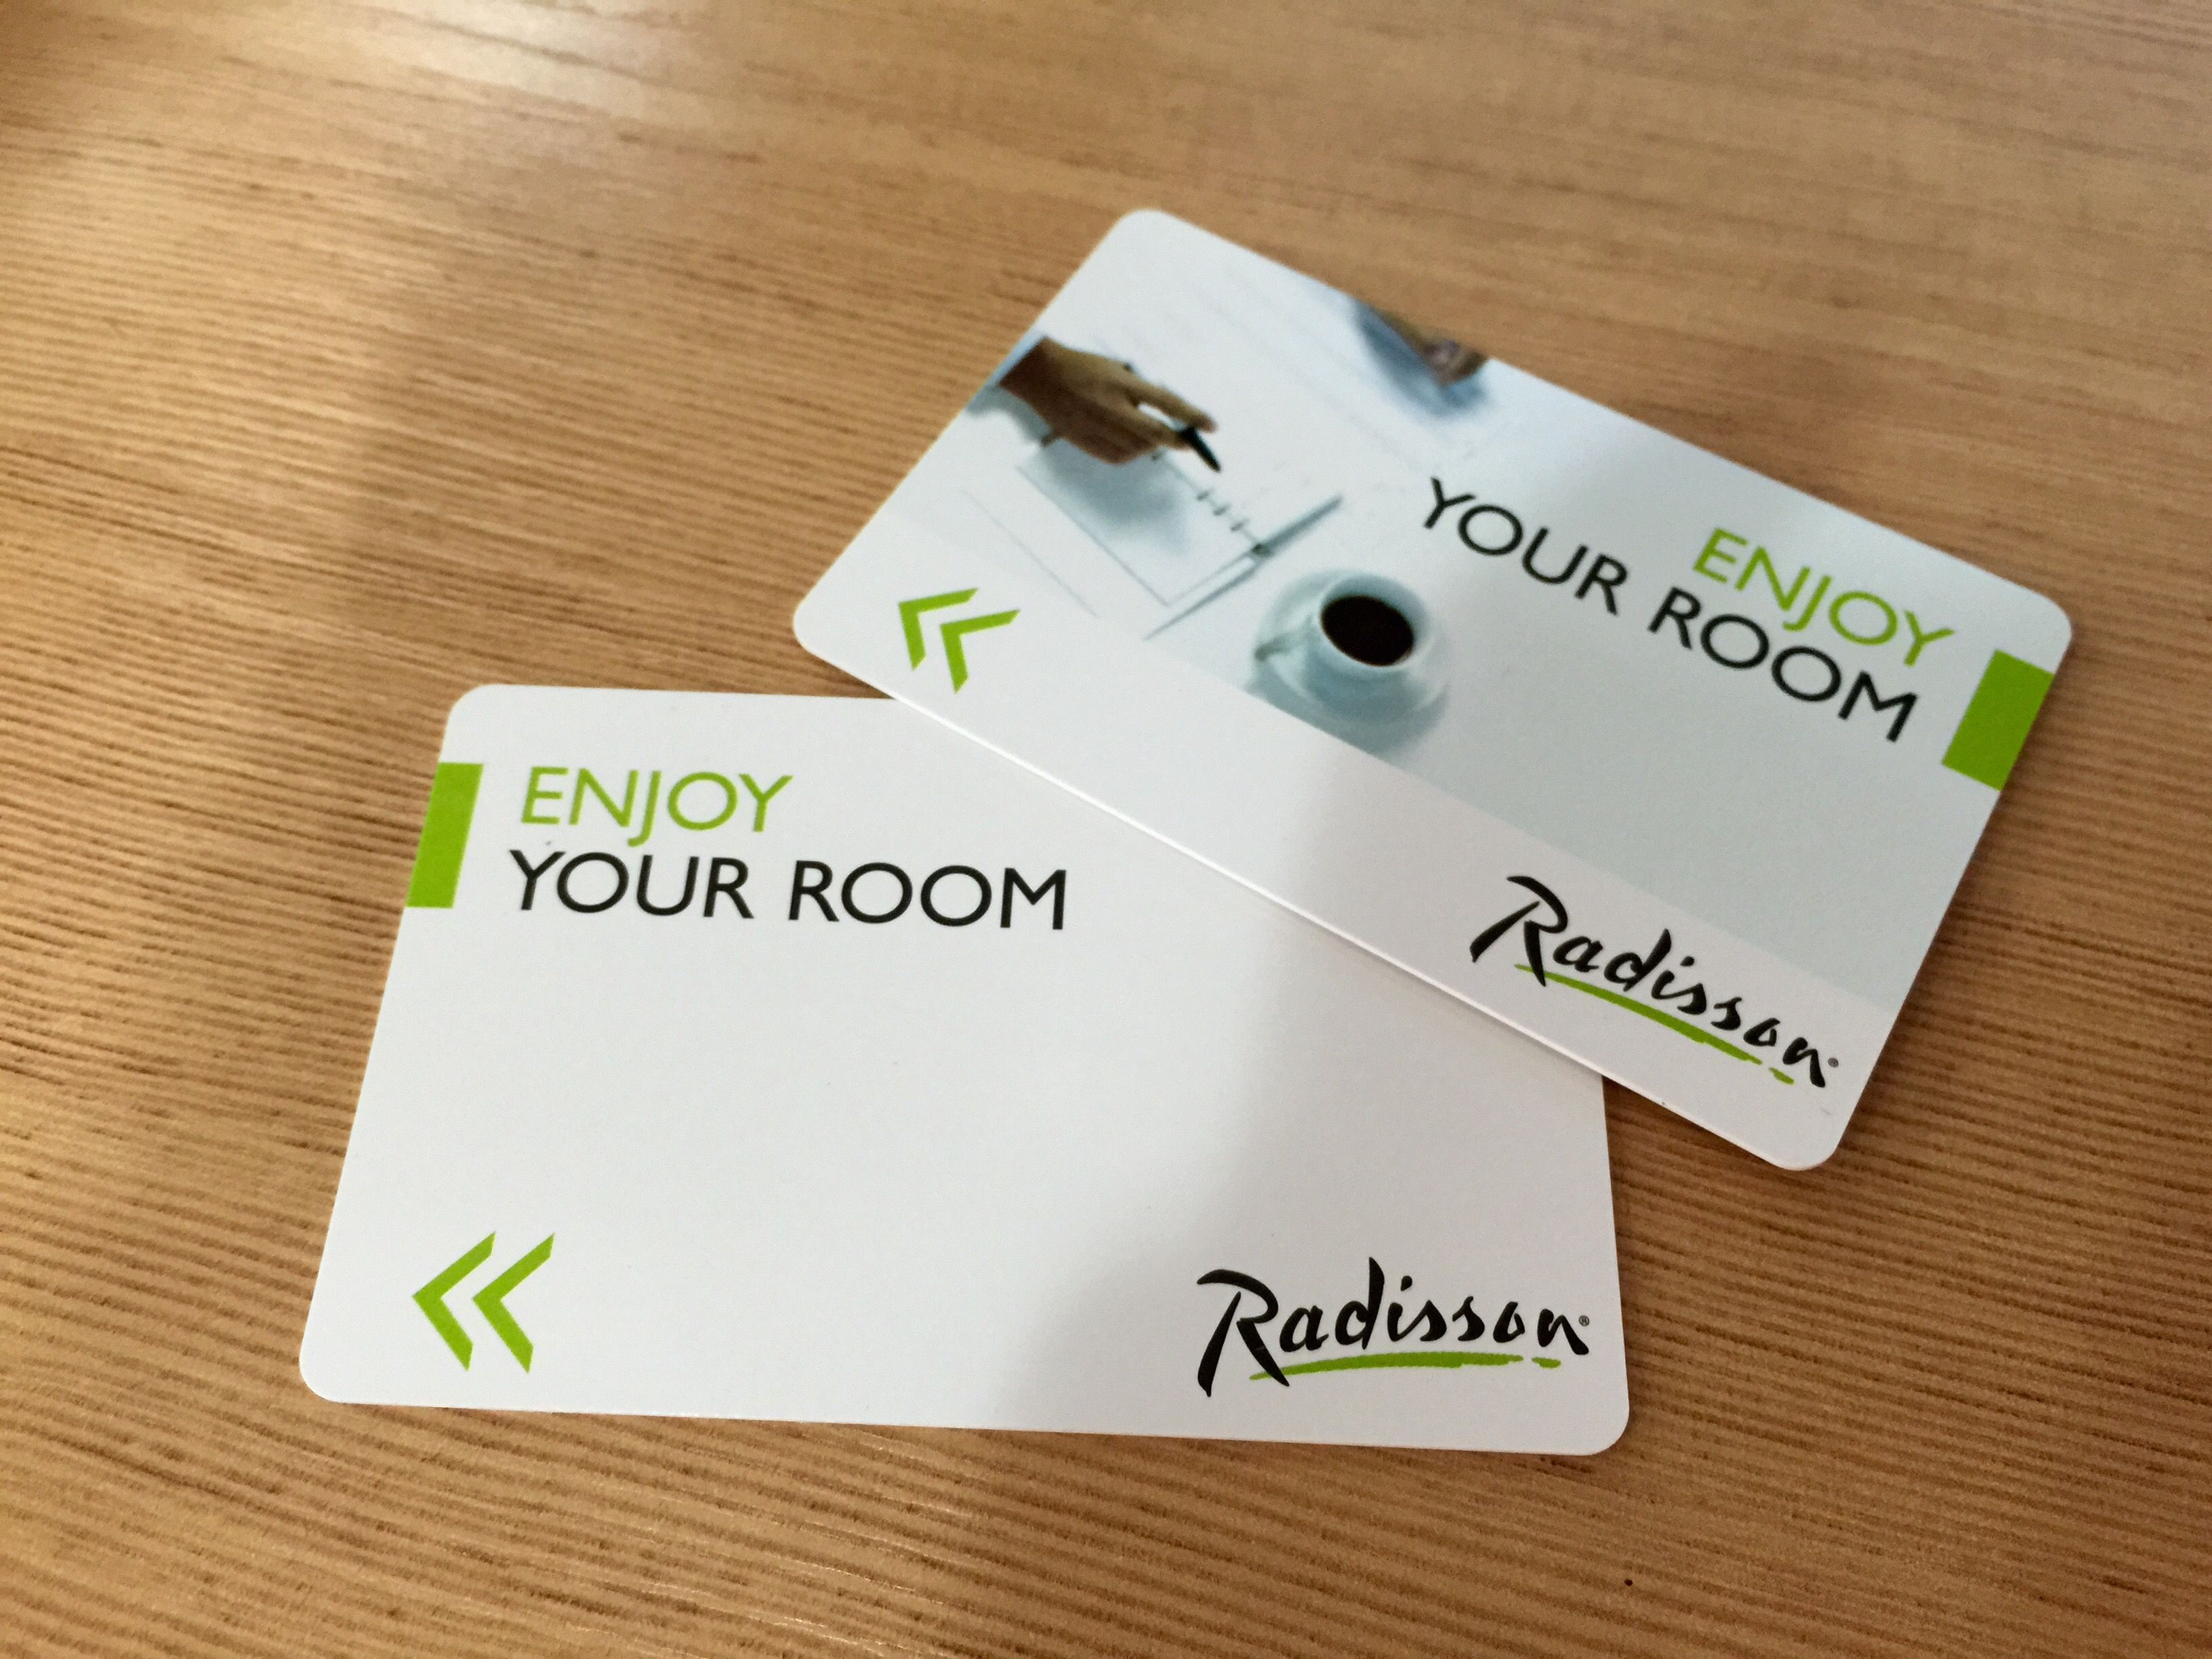 Cards made for Radisson 1 | hotel key cards made by ourselves ...